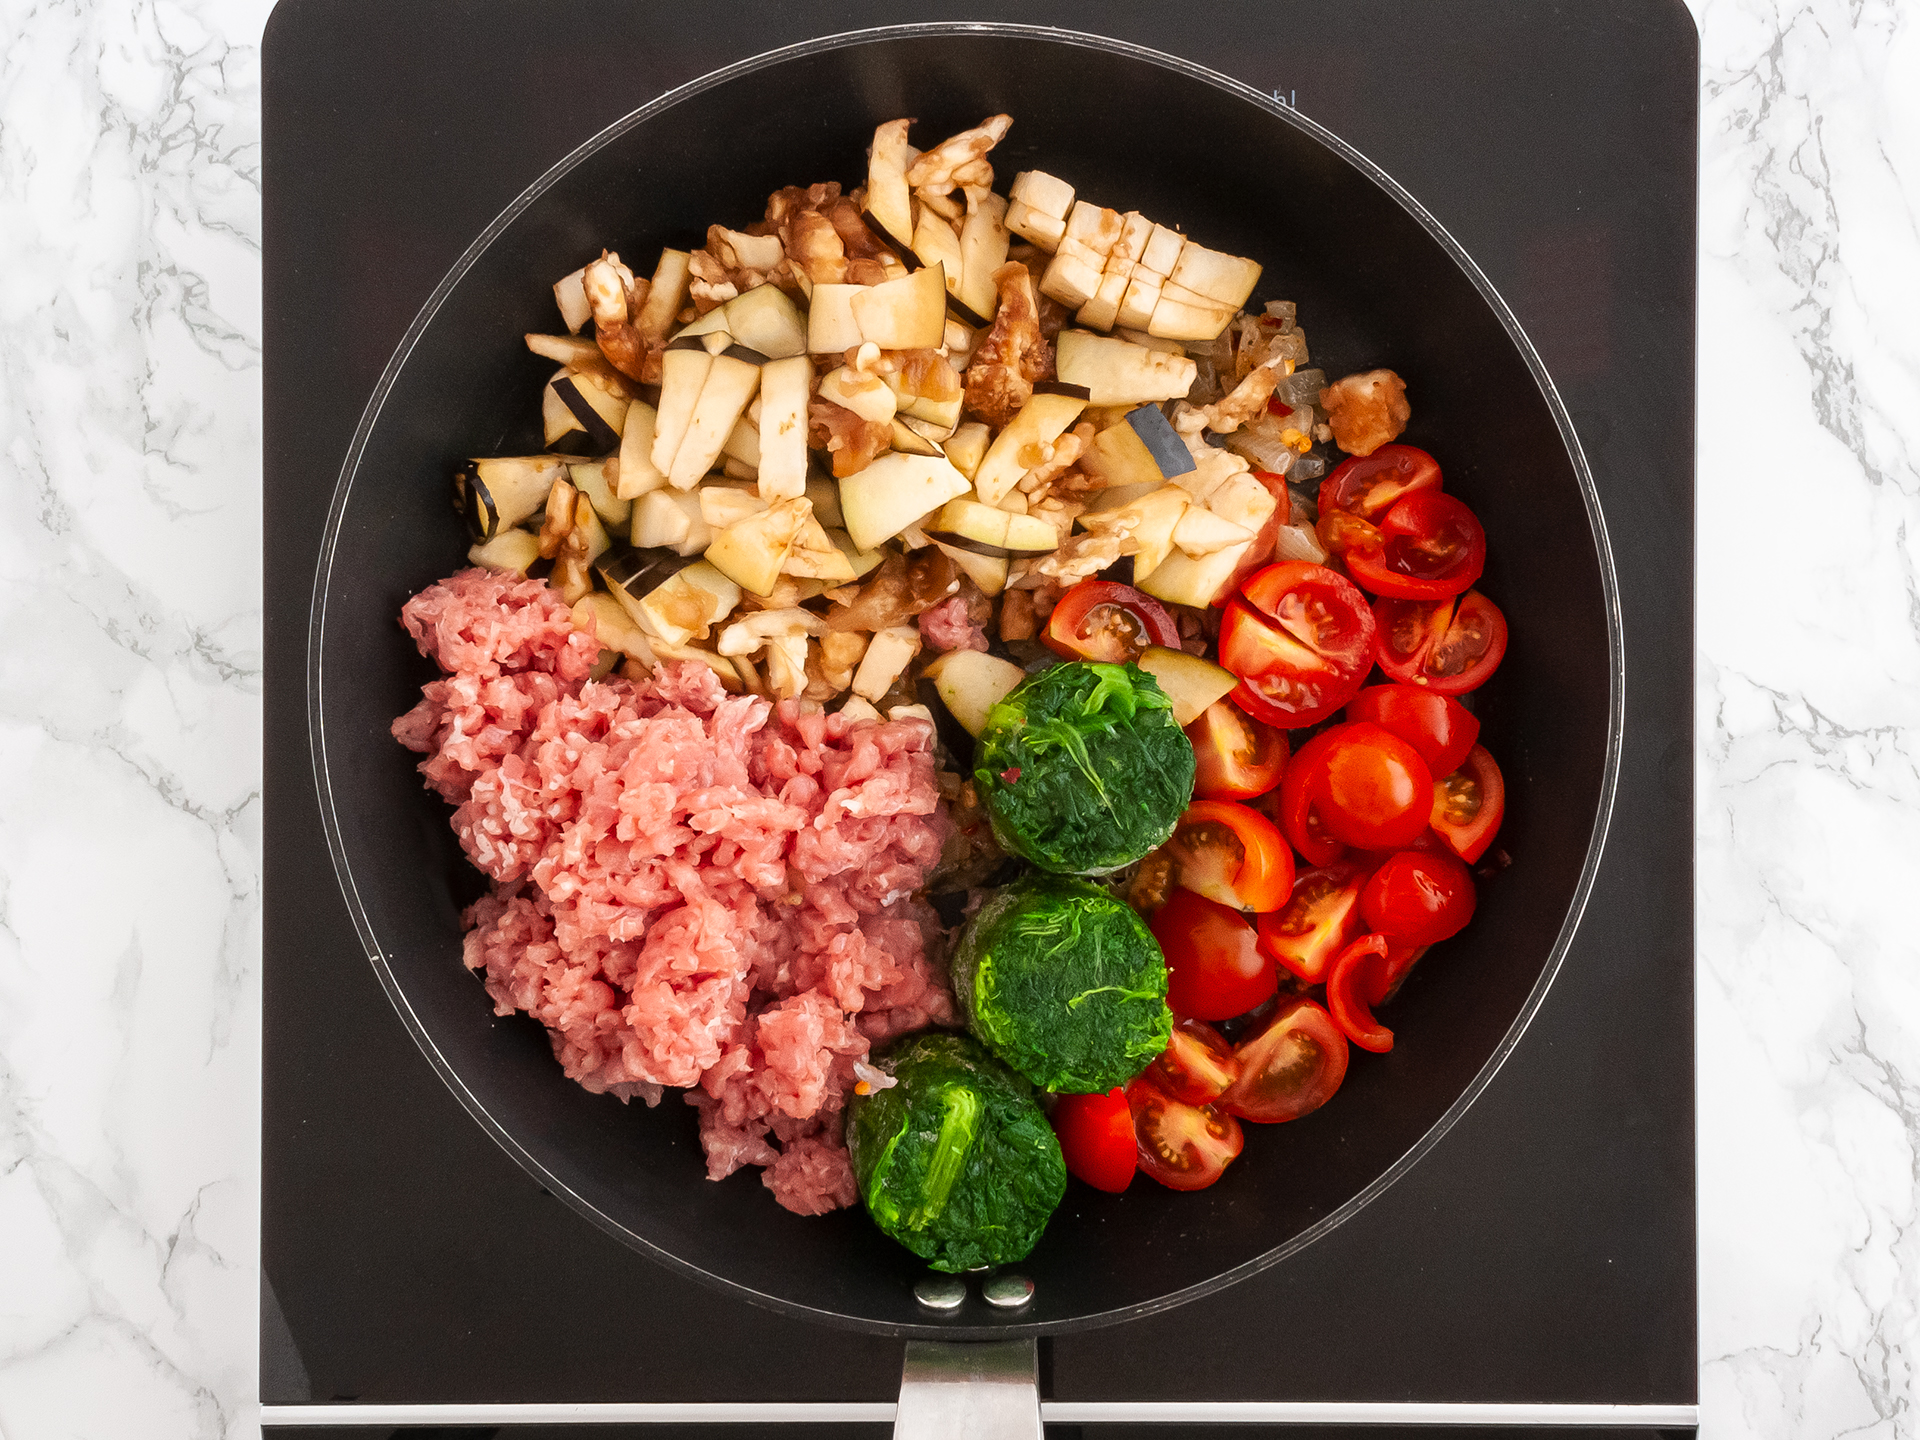 Mince, spinach, tomatoes and aubergines and other keto aubergine ingredients inside a pan